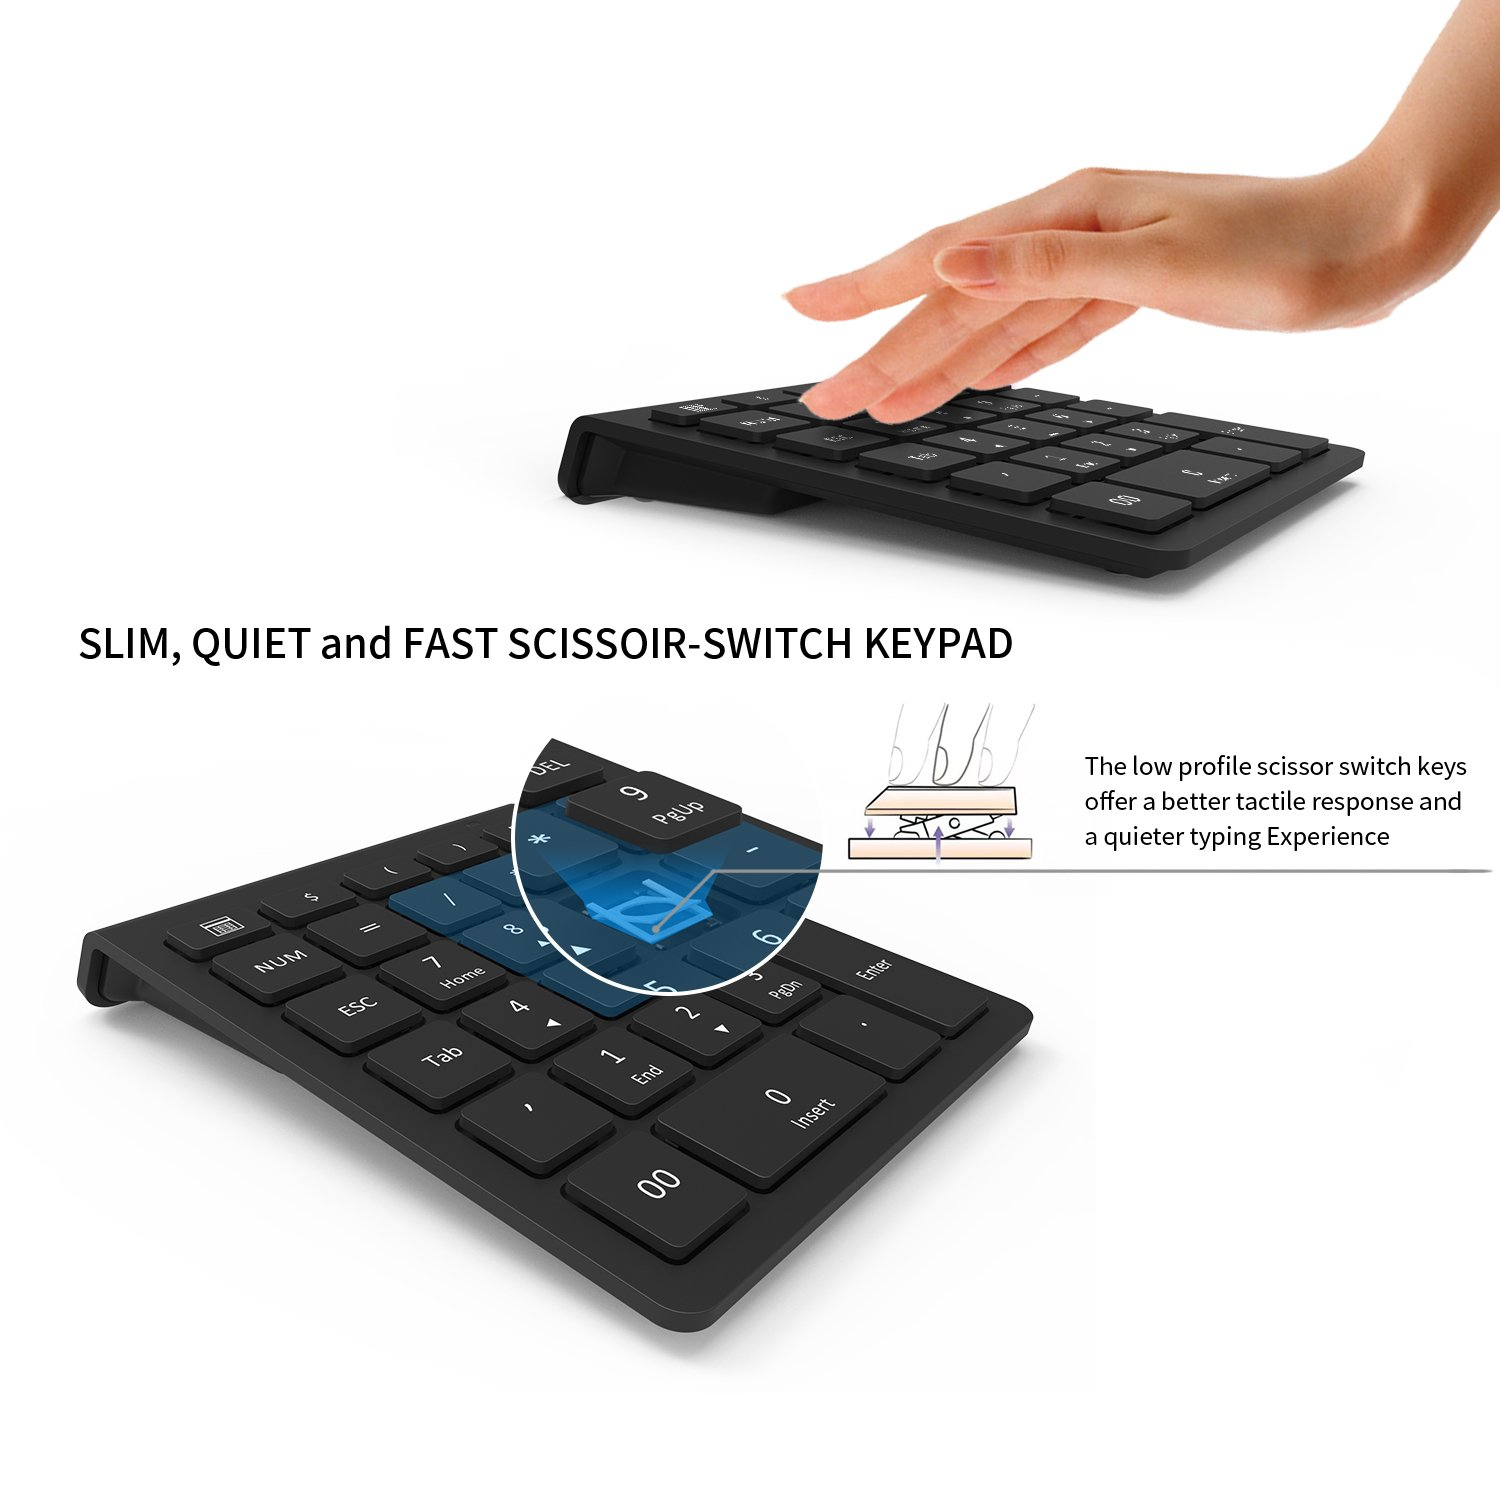 Amazon wireless number pad jelly comb ultra slim 24g wireless amazon wireless number pad jelly comb ultra slim 24g wireless numeric keypad full size 28 key multiple shortcuts with nano receiver for laptop pc buycottarizona Image collections